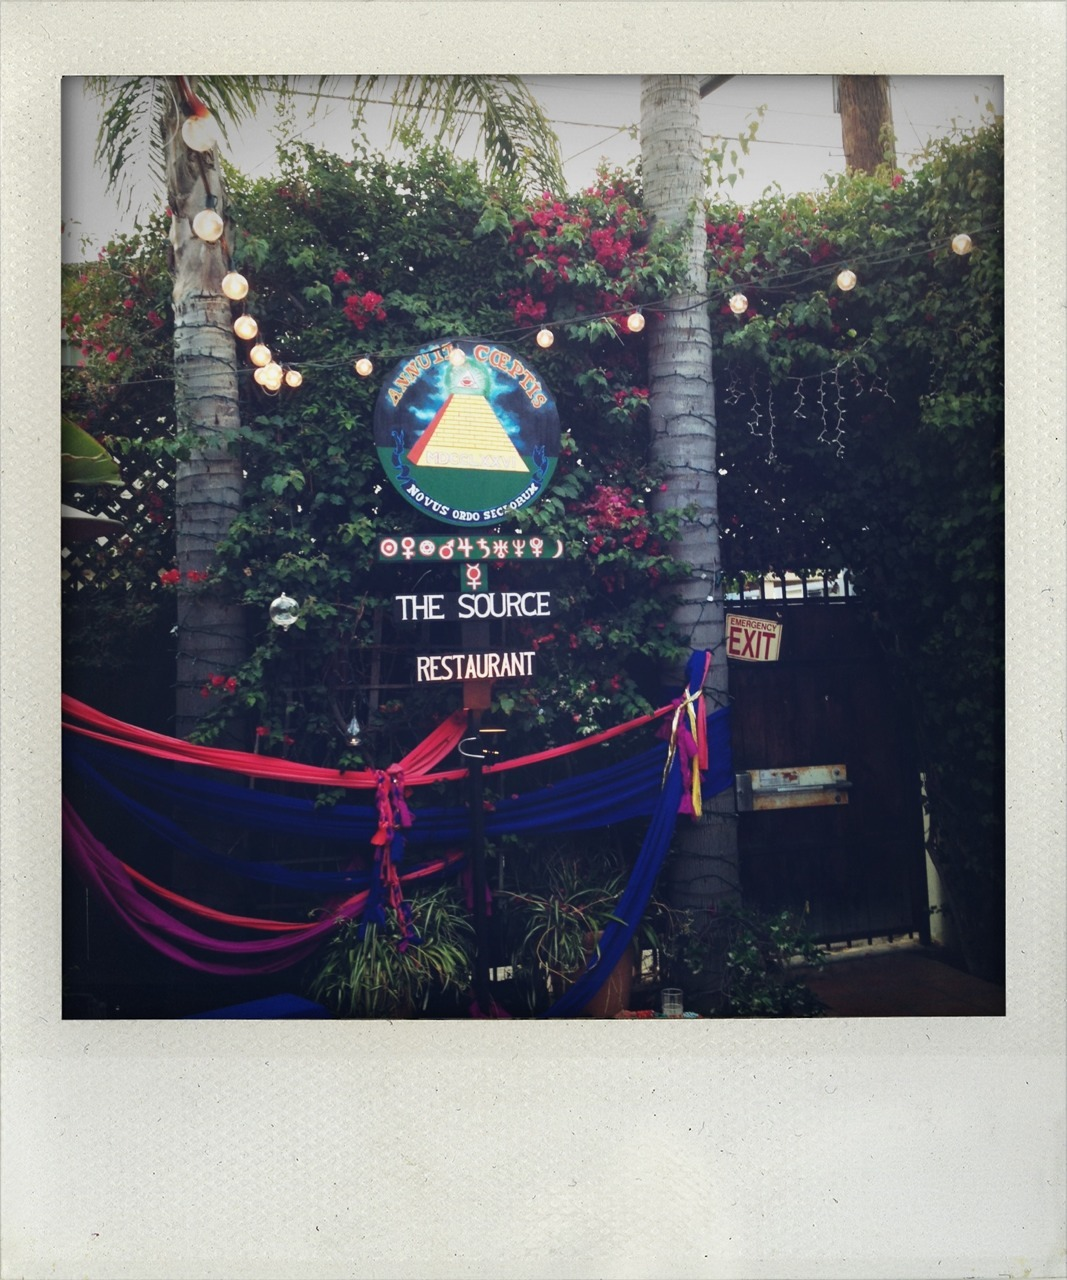 watched the source family docu at cinefamily and ate really good hippie food last night ✌✨